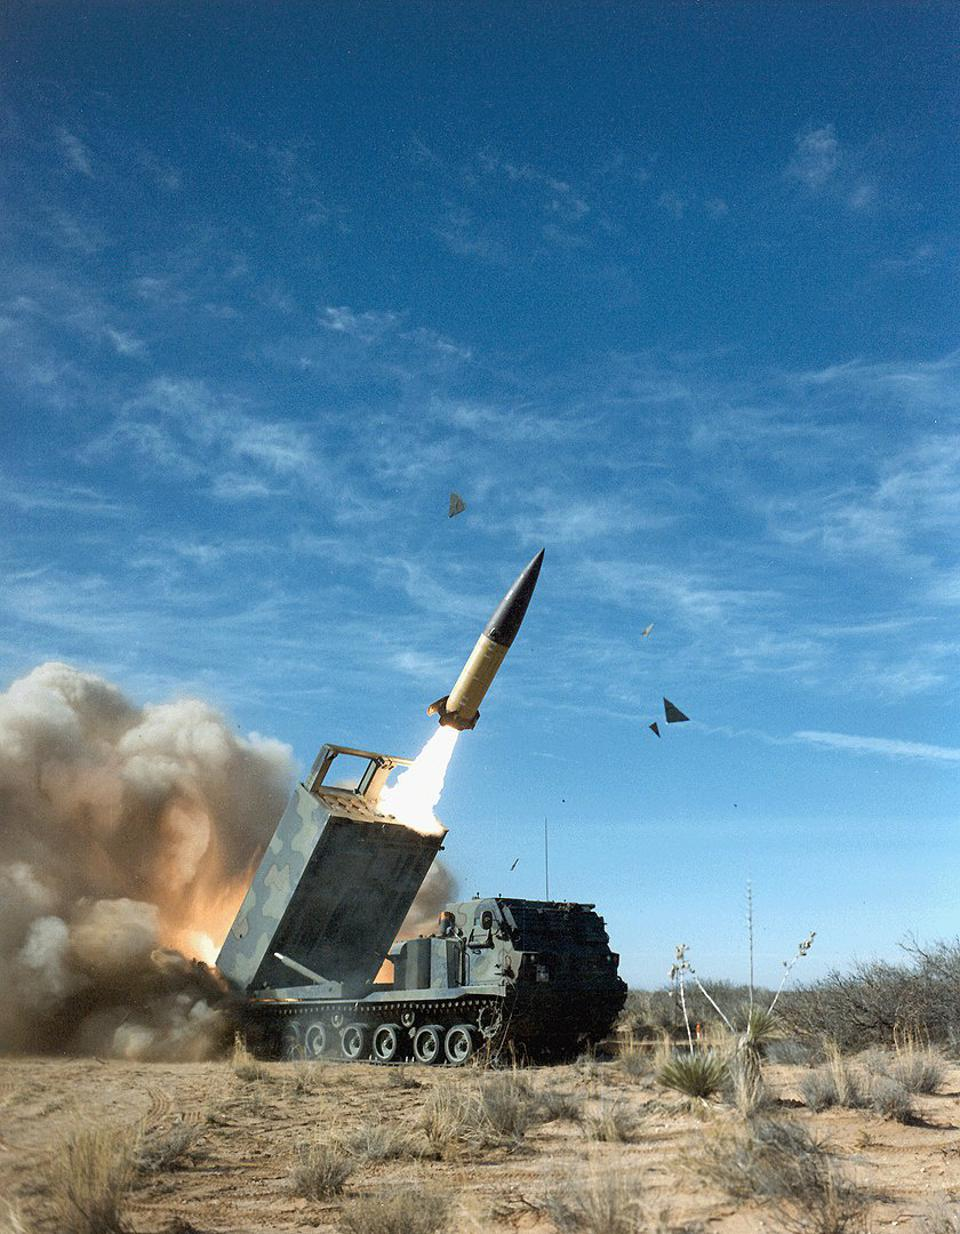 Missile launch in the desert against the backdrop of a blue sky.